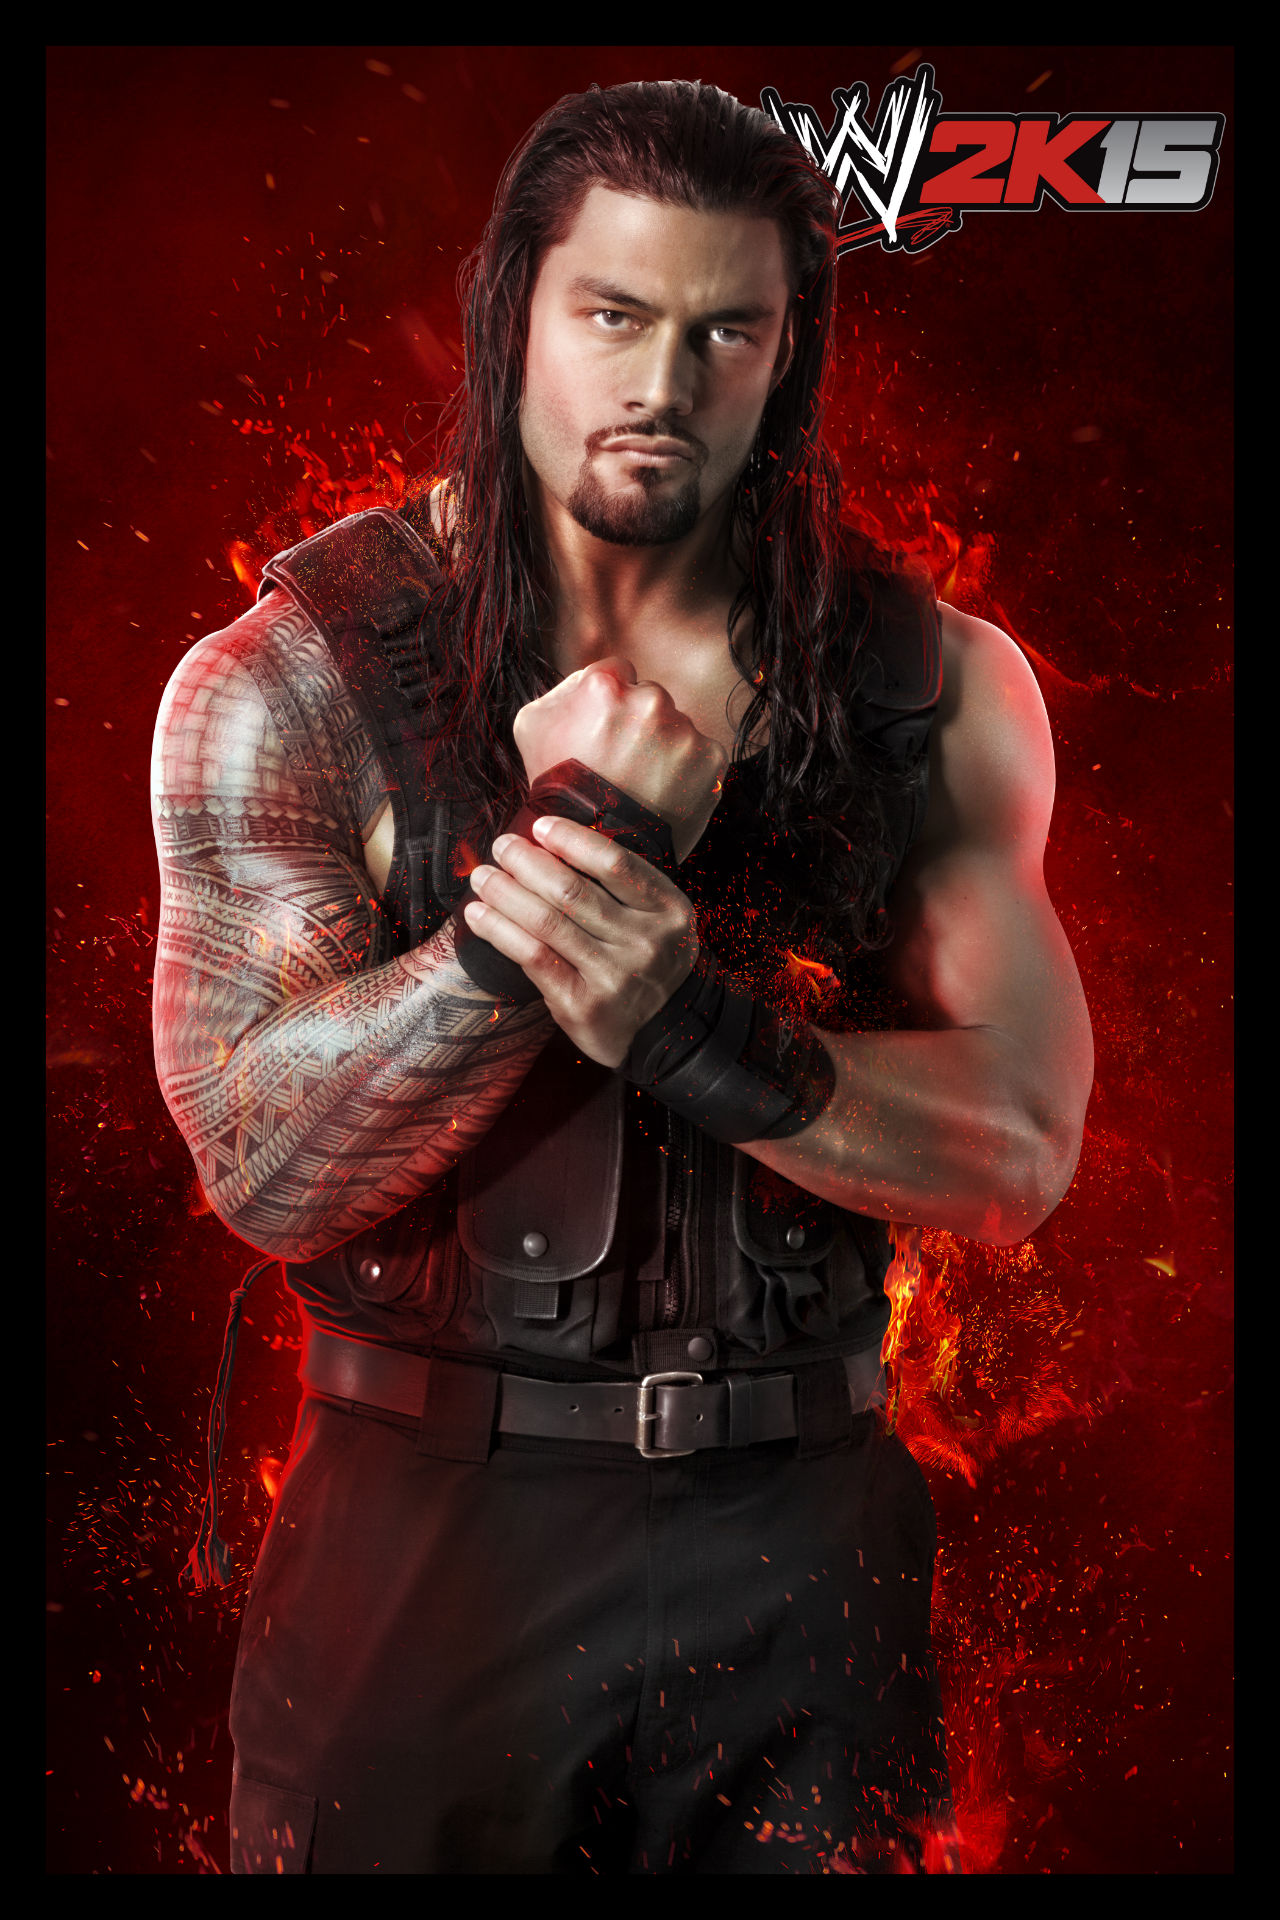 Roman Reigns Images Wwe 2k15 Hd Wallpaper And Background